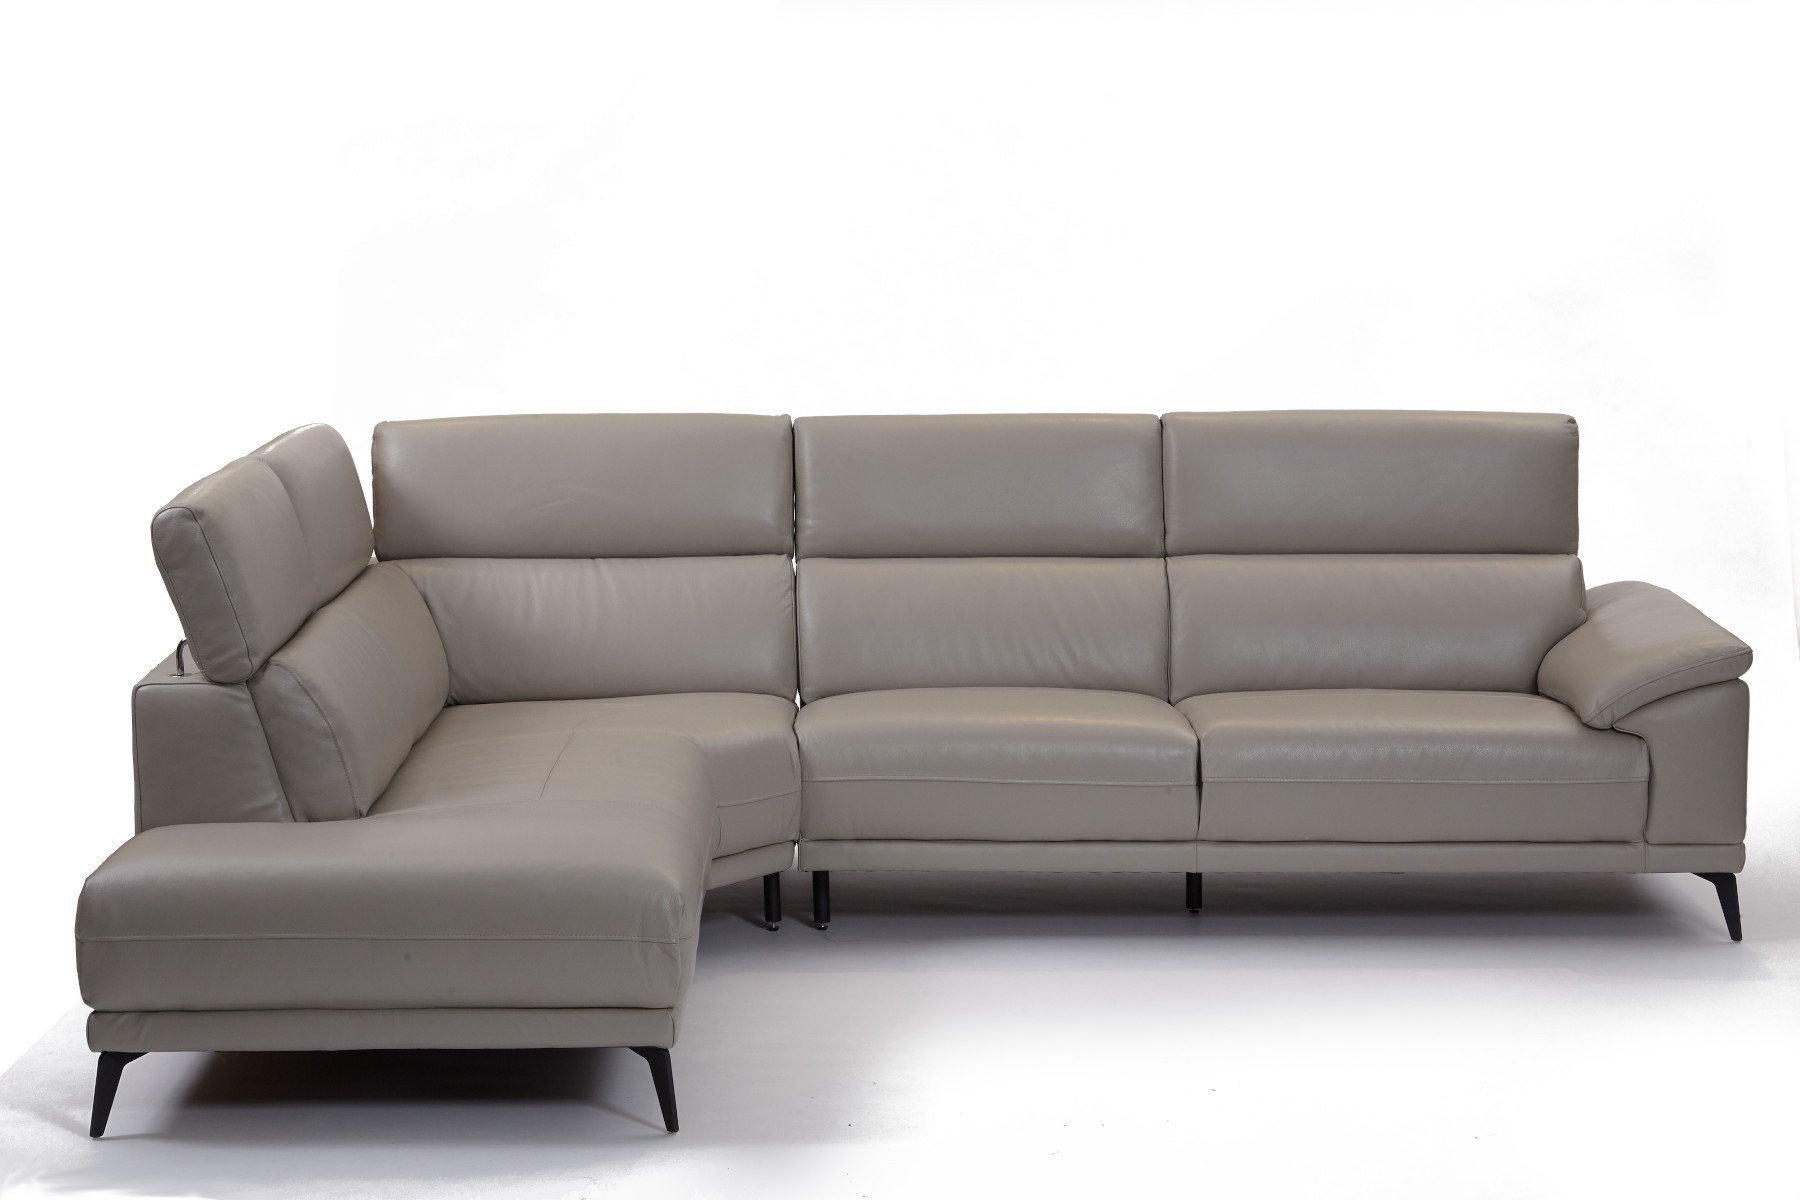 Montero LHF Corner Sofa - Leather